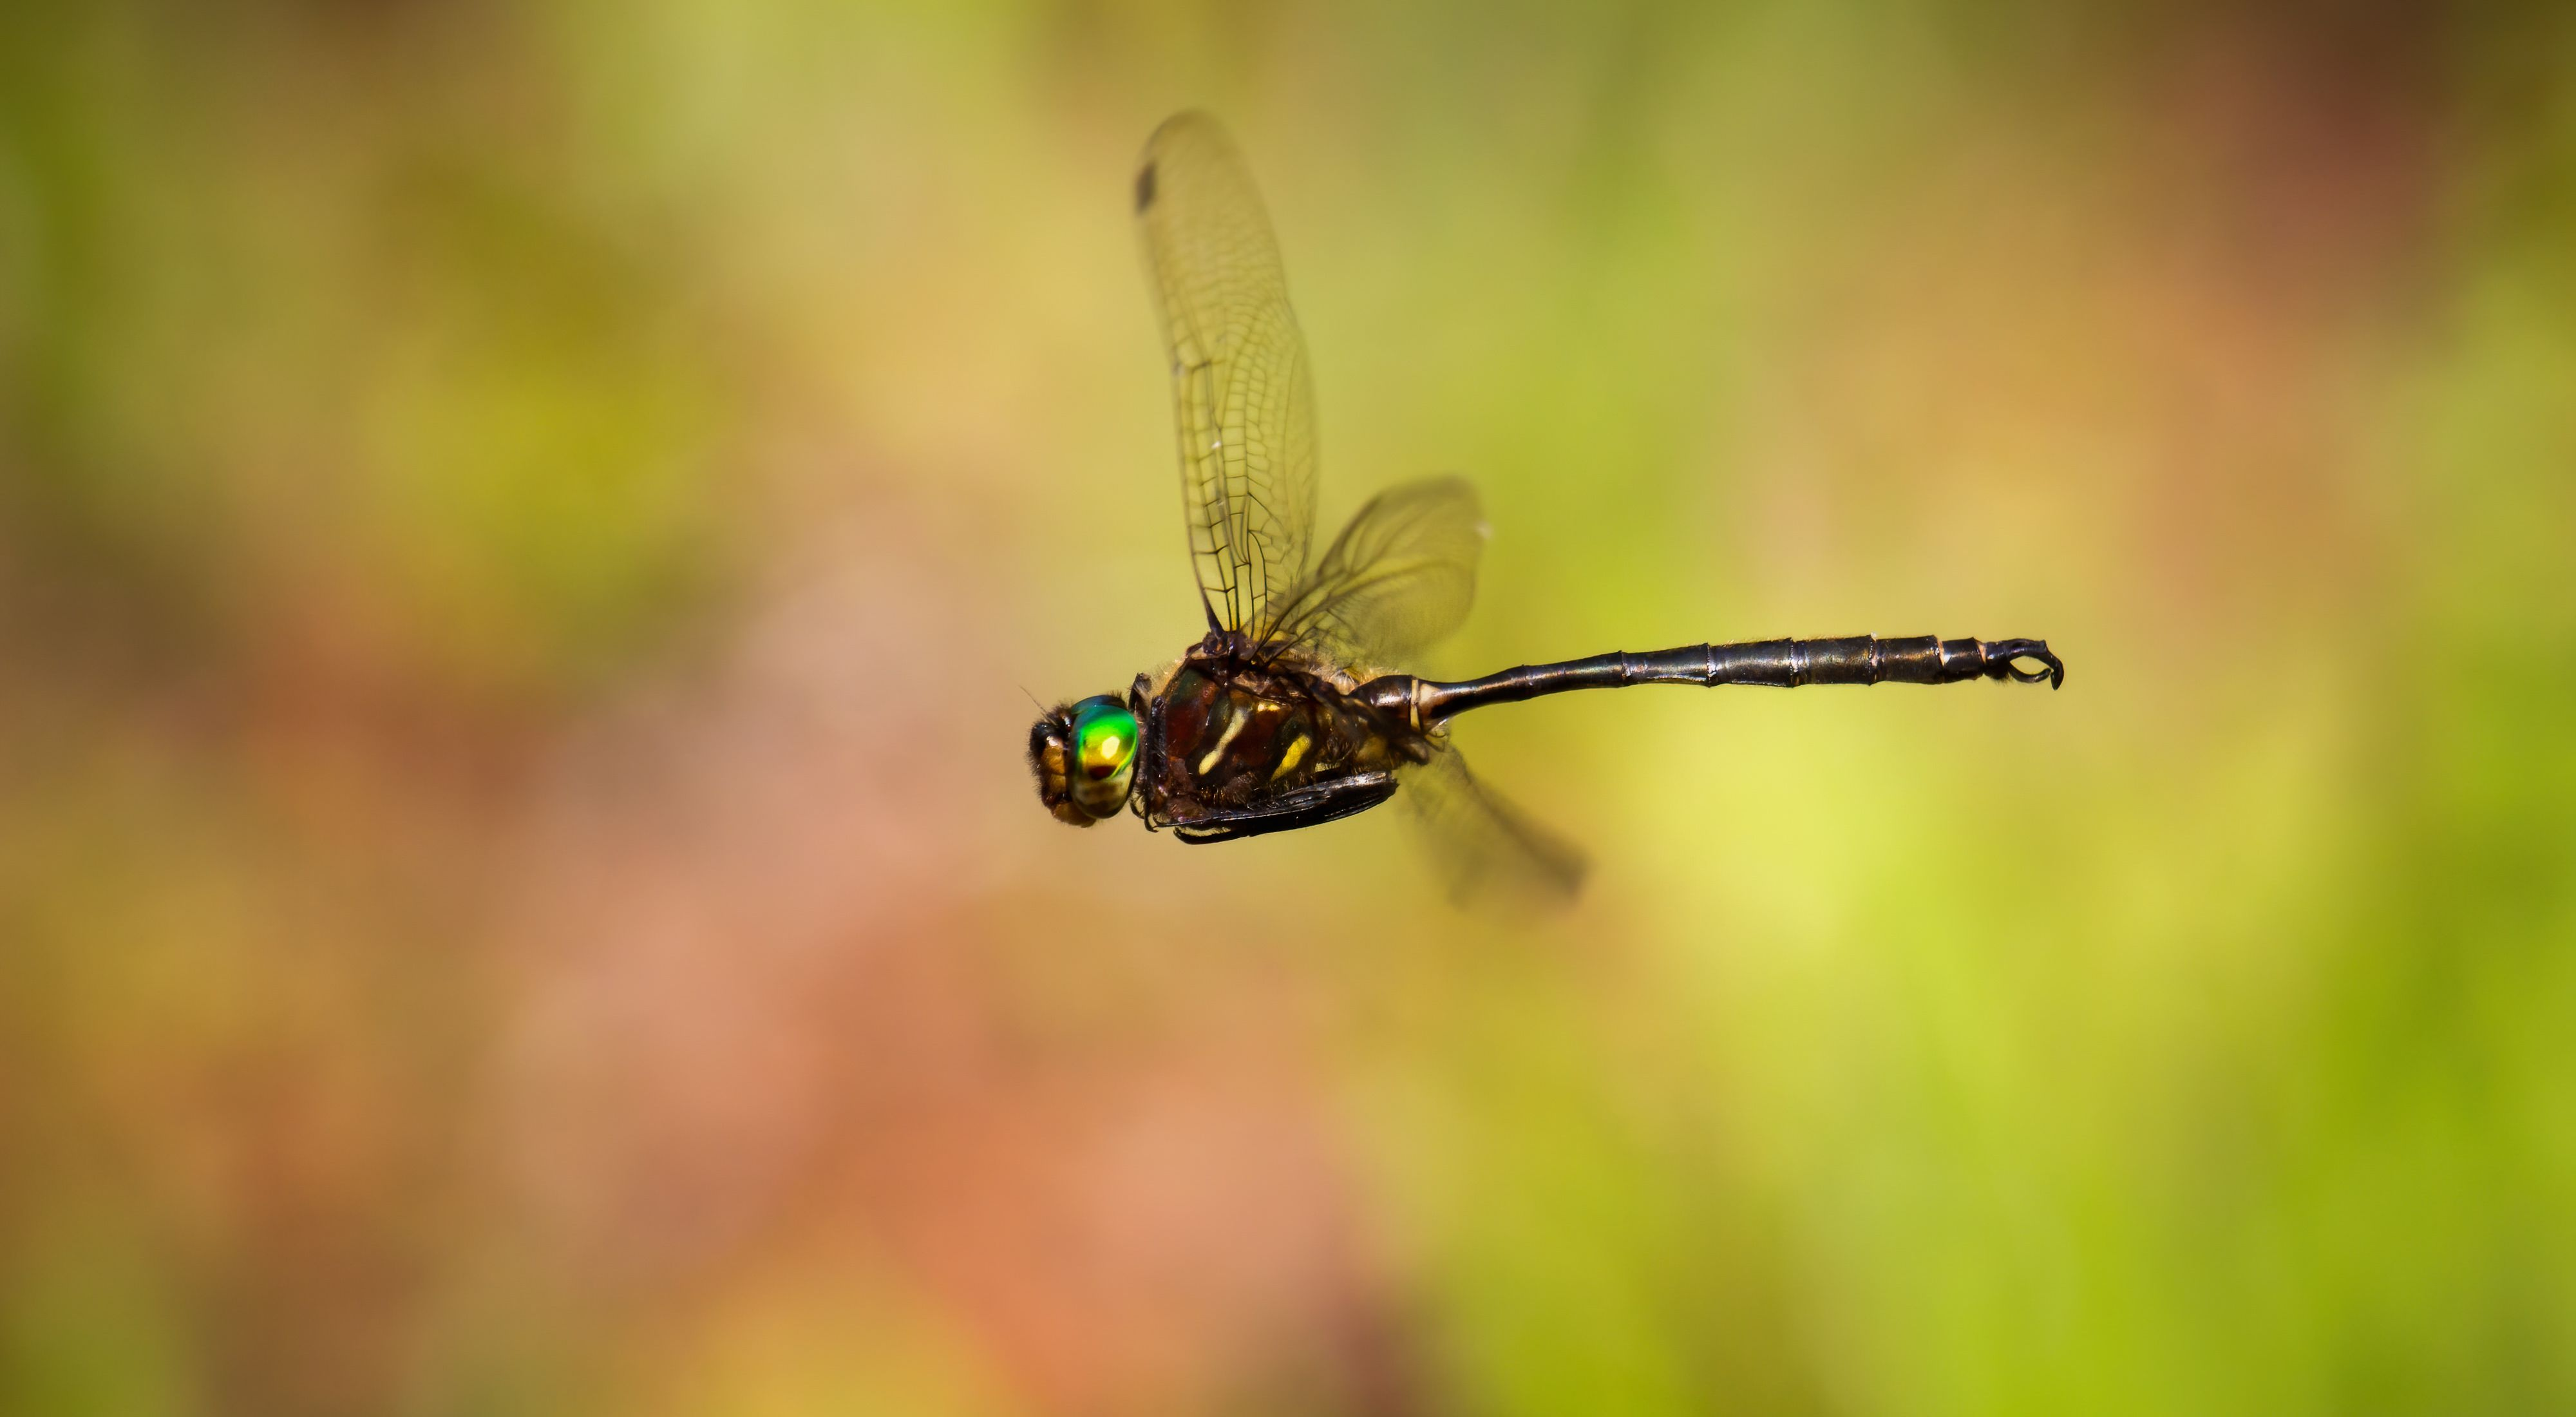 Darkly colored dragonfly with green head in flight.